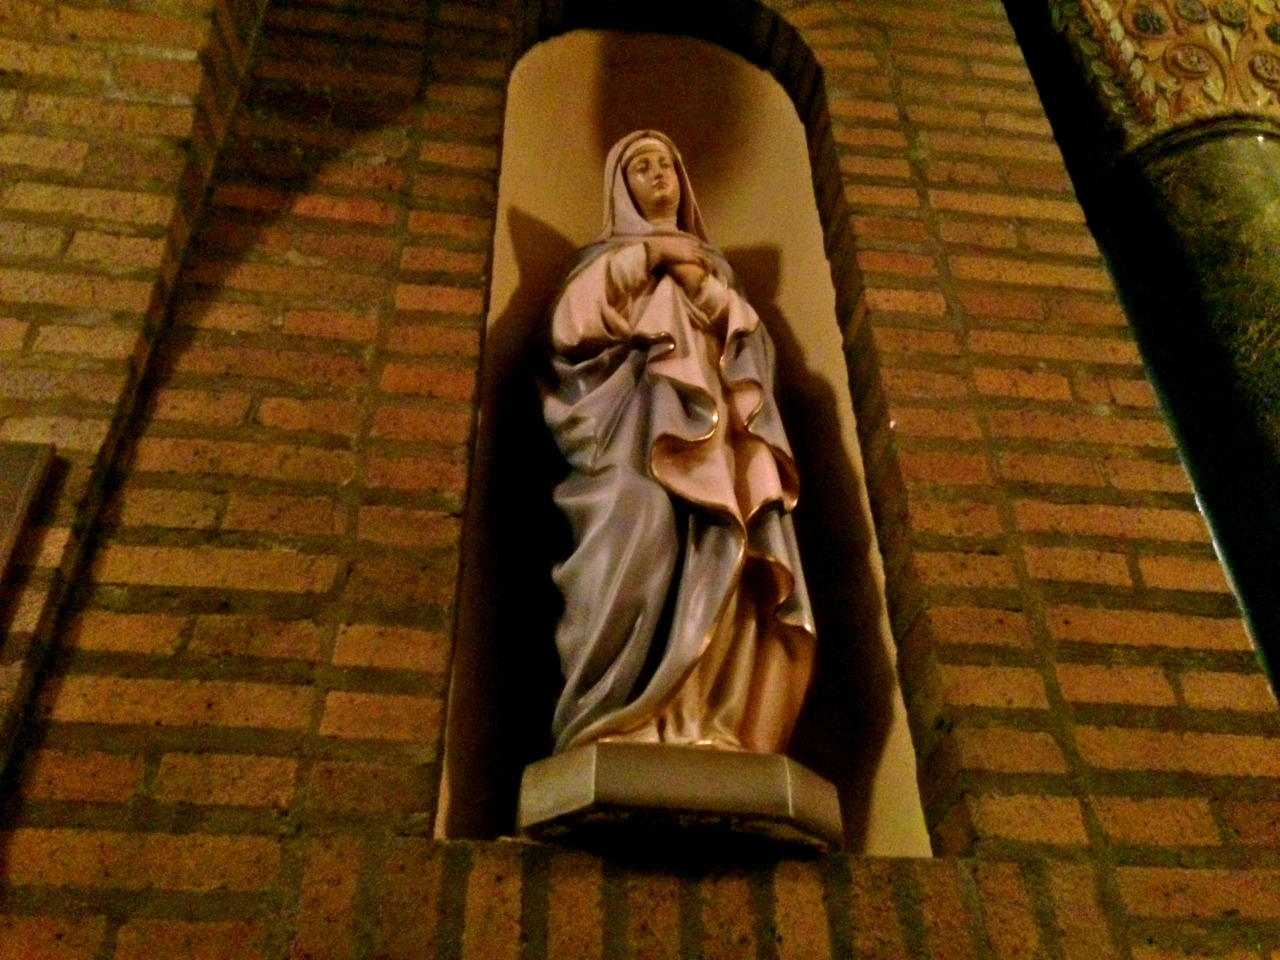 Statue of Our Lady, Saint Casimir Church; Buffalo, NY